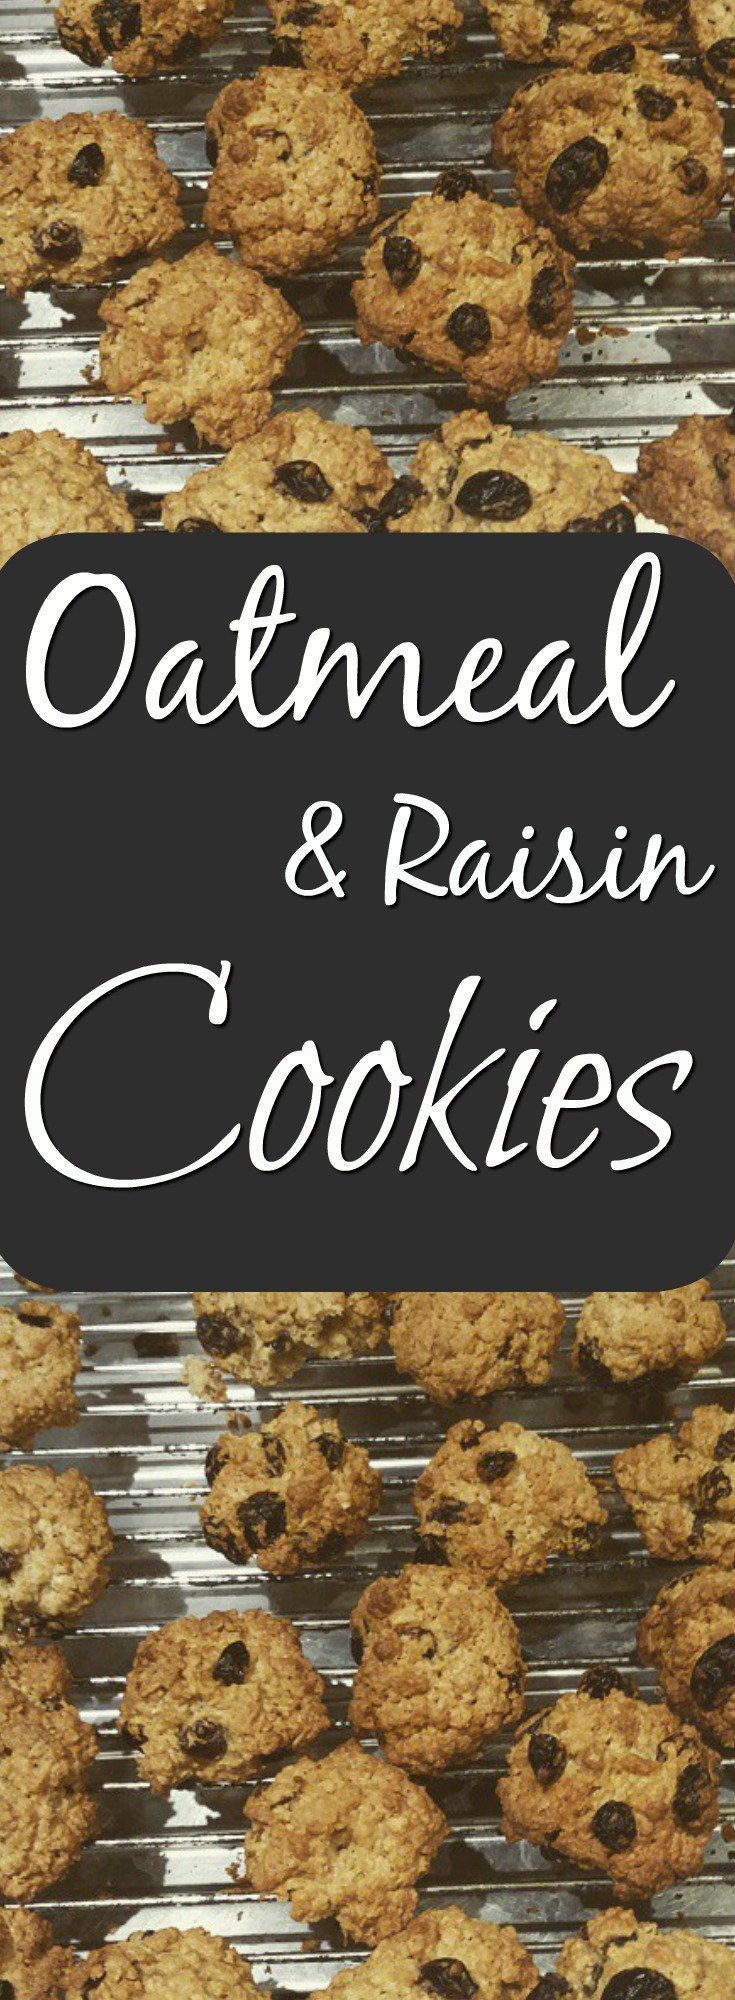 Yummy Oatmeal and raisin cookies just like mama used to make